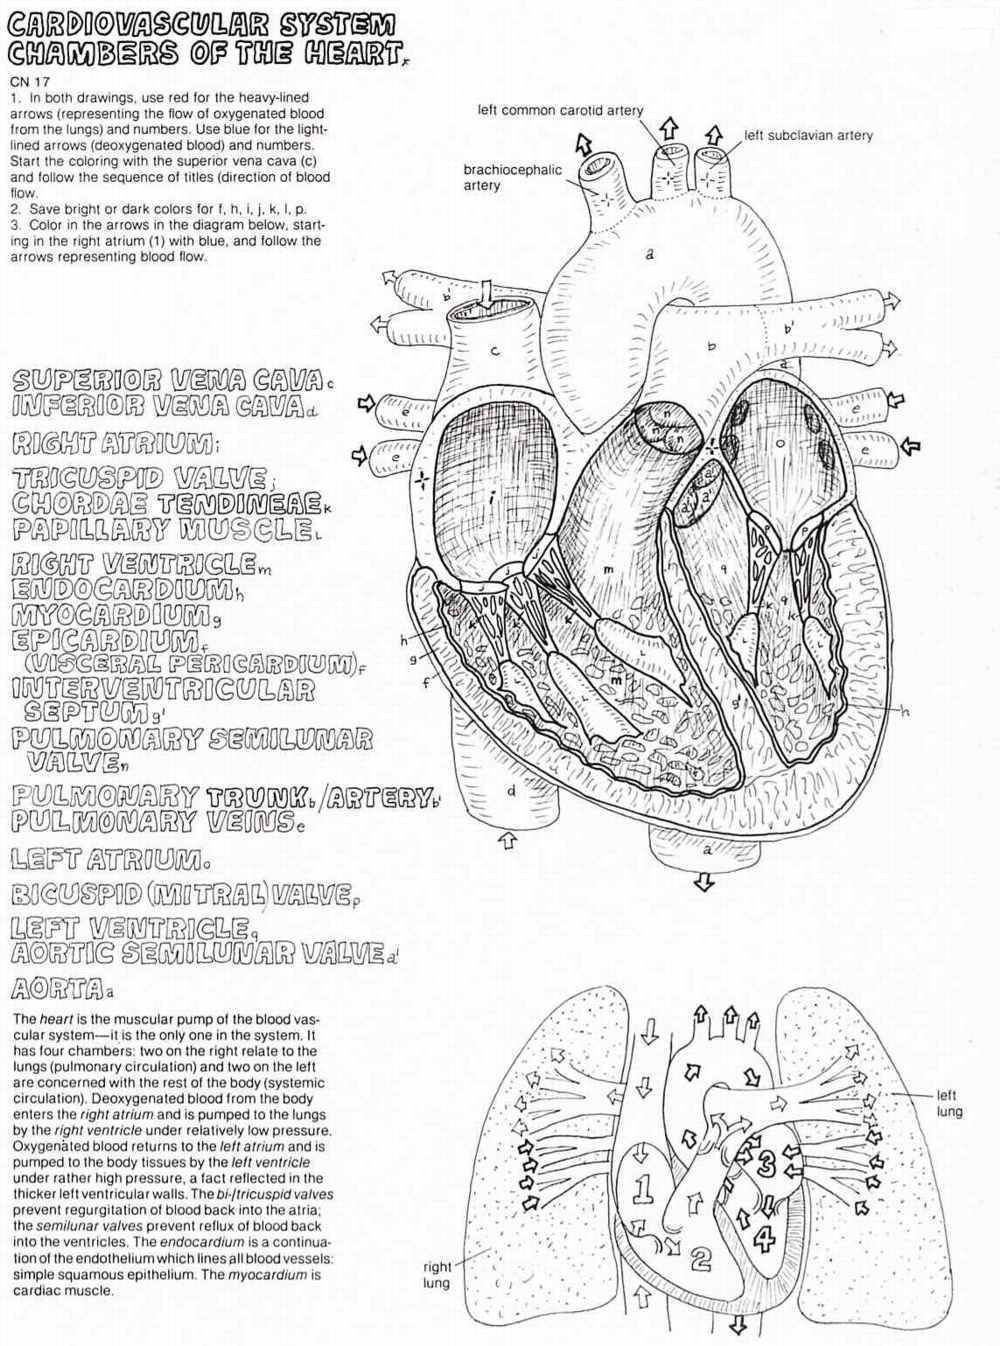 cardiovascular system chambers of the heart worksheet google